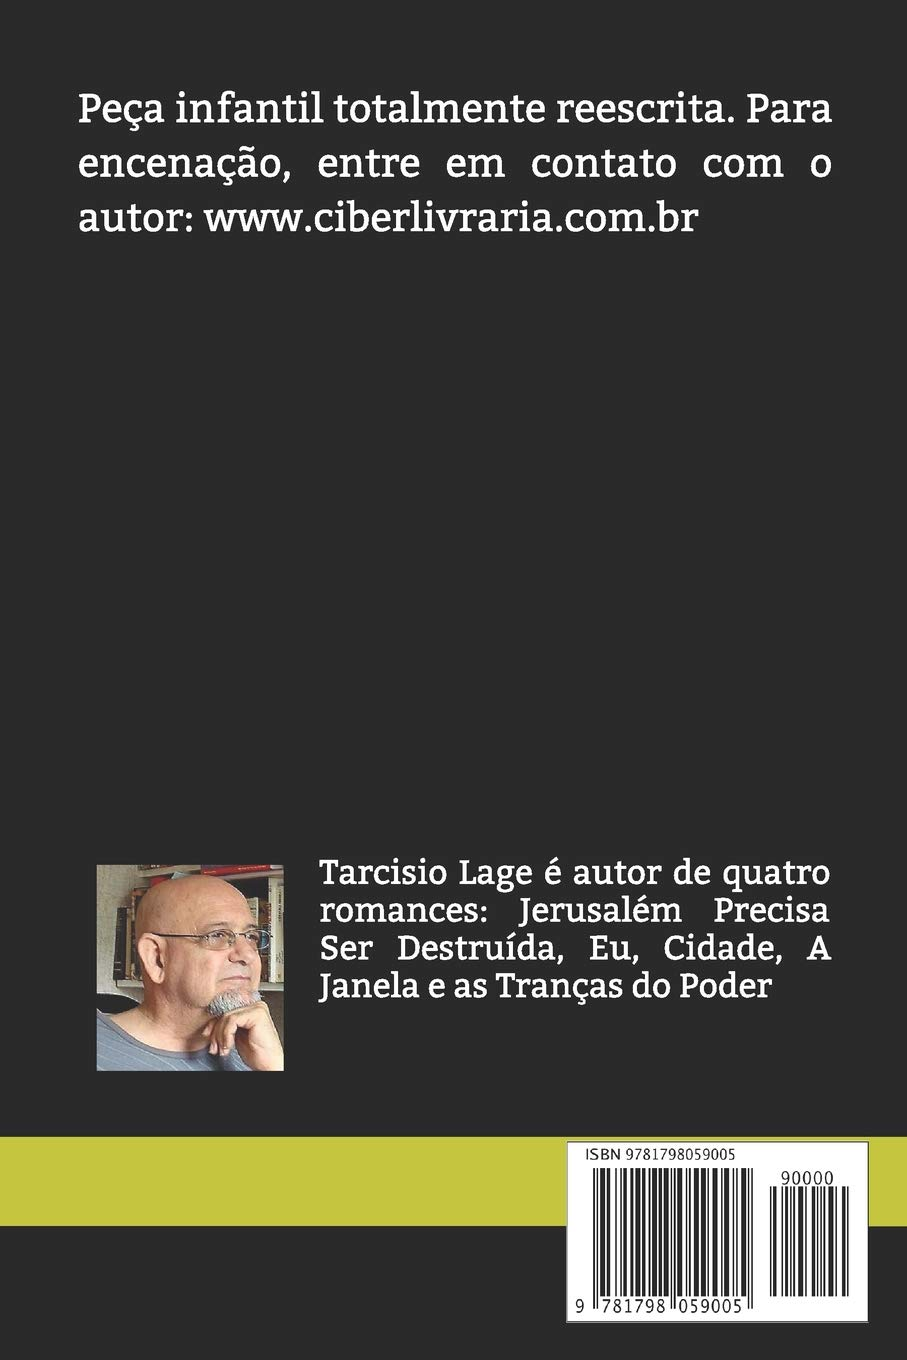 Amazon.com: A Bruxa Adriana (Portuguese Edition) (9781798059005): Tarcisio Lage: Books